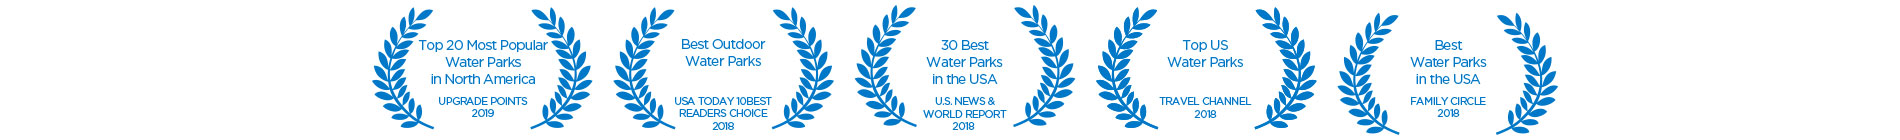 Water Country USA Accolades - Best Water Parks in the USA |Top 20 Most Popular Water Parks in North America - Upgrade Points | Best Outdoor Water Parks - USA Today 10Best Readers Choice | 30 Best Water Parks in the USA - U.S. News World Report | Top US Water Parks - Travel Channel | Best Water Parks in the USA - Family Circle